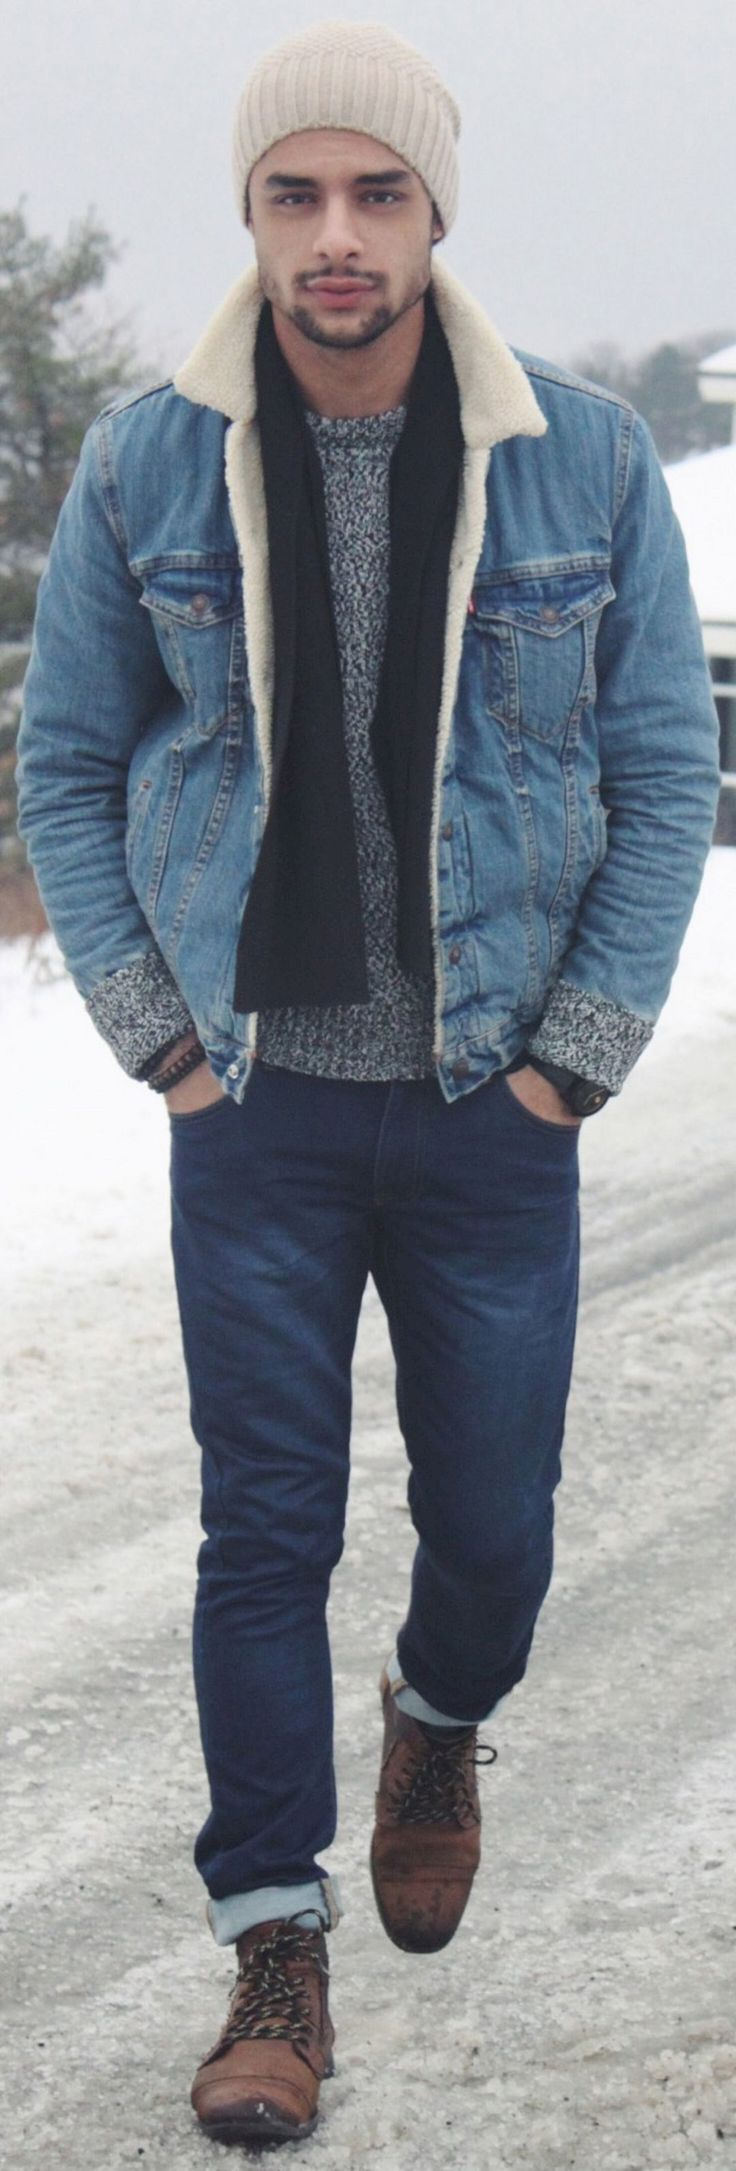 35+ Most Popular Men Winter Outfit Ideas